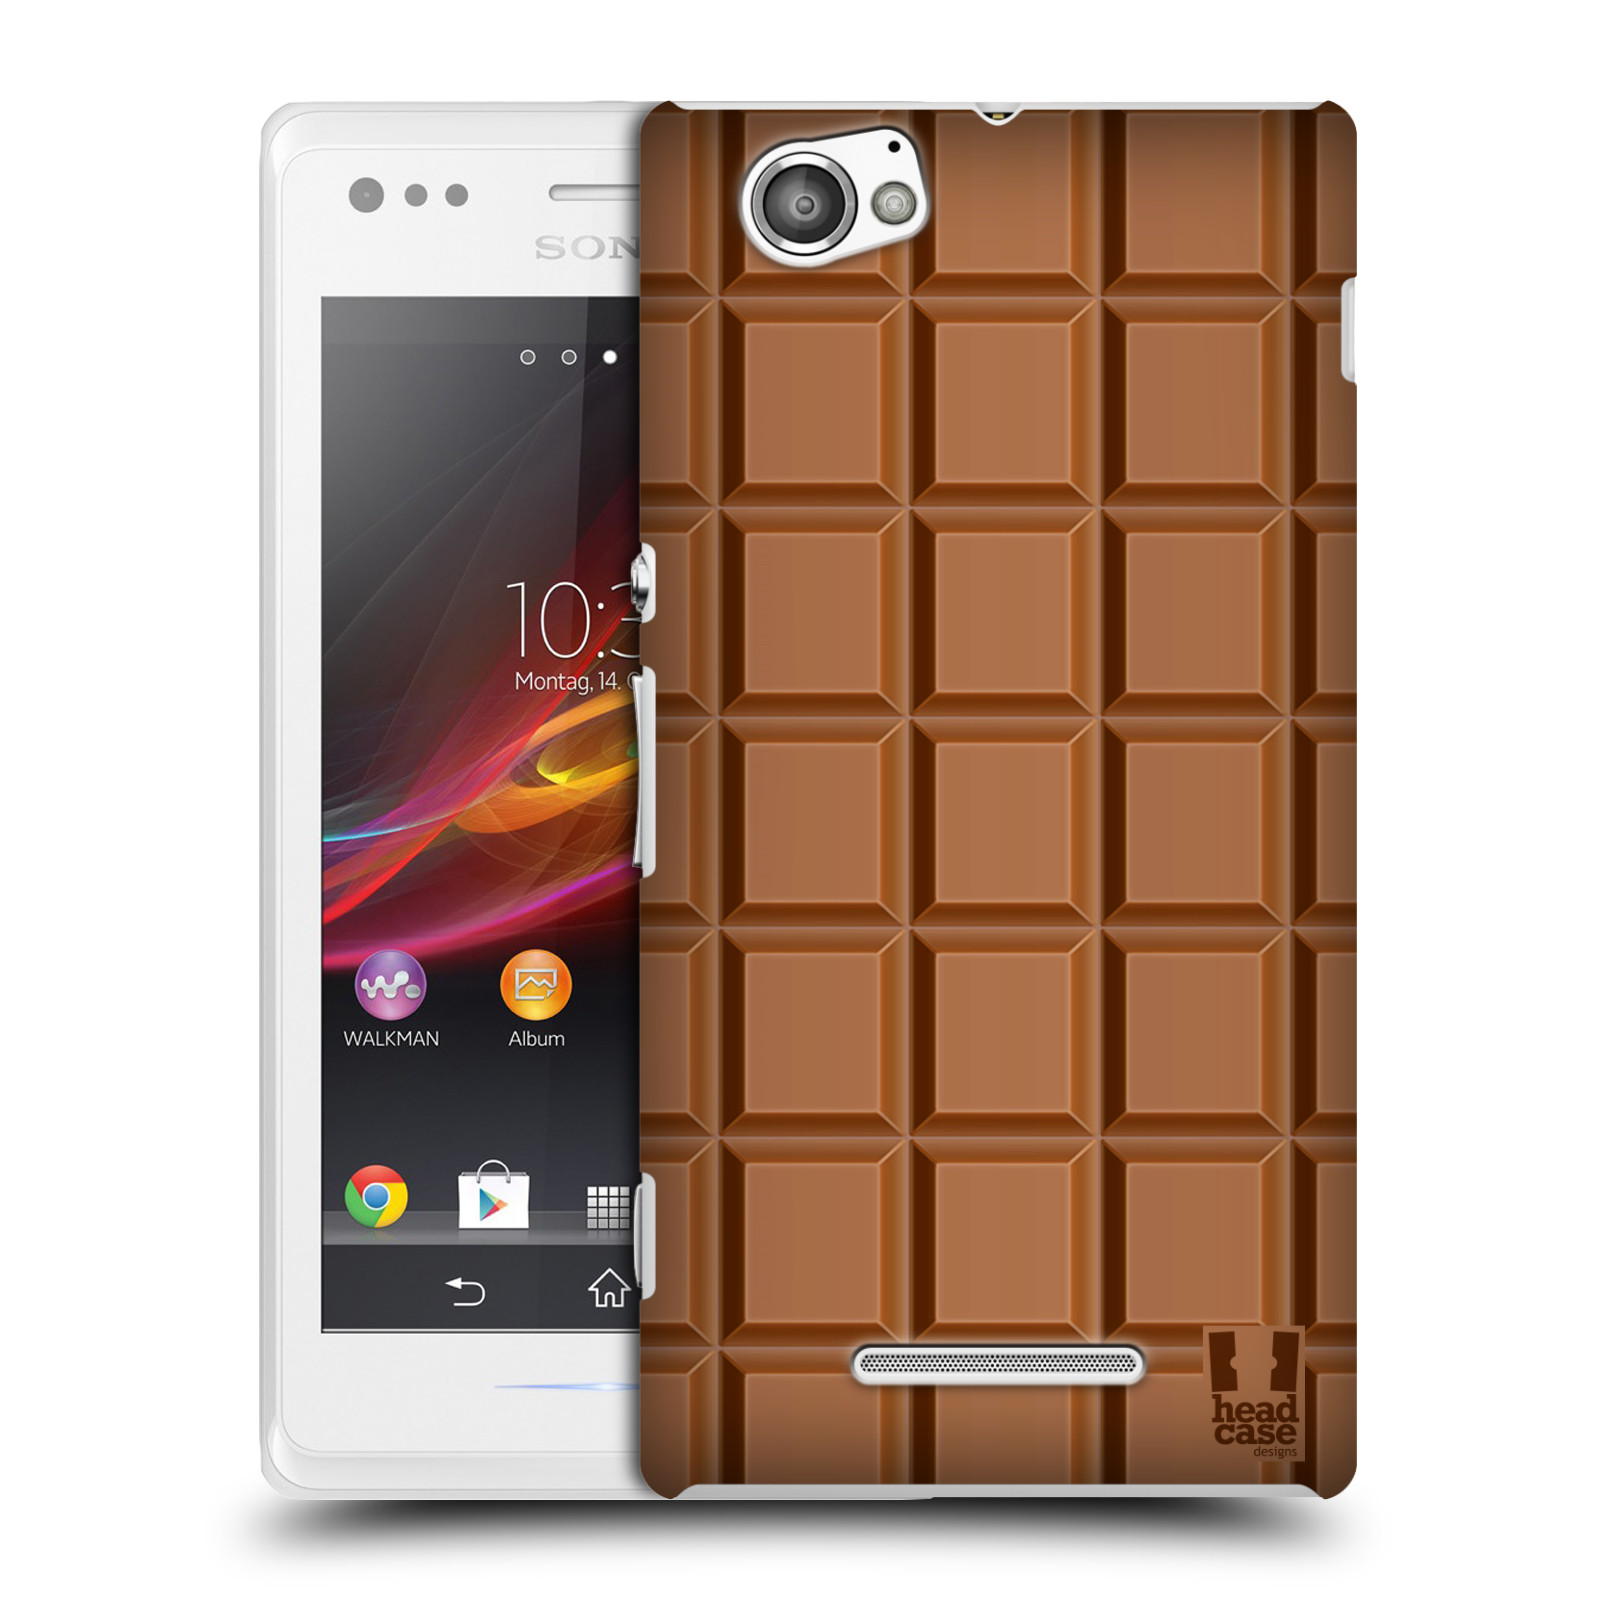 HEAD CASE DESIGNS CHOCOLATY CASE COVER FOR SONY XPERIA M C1905 C1904